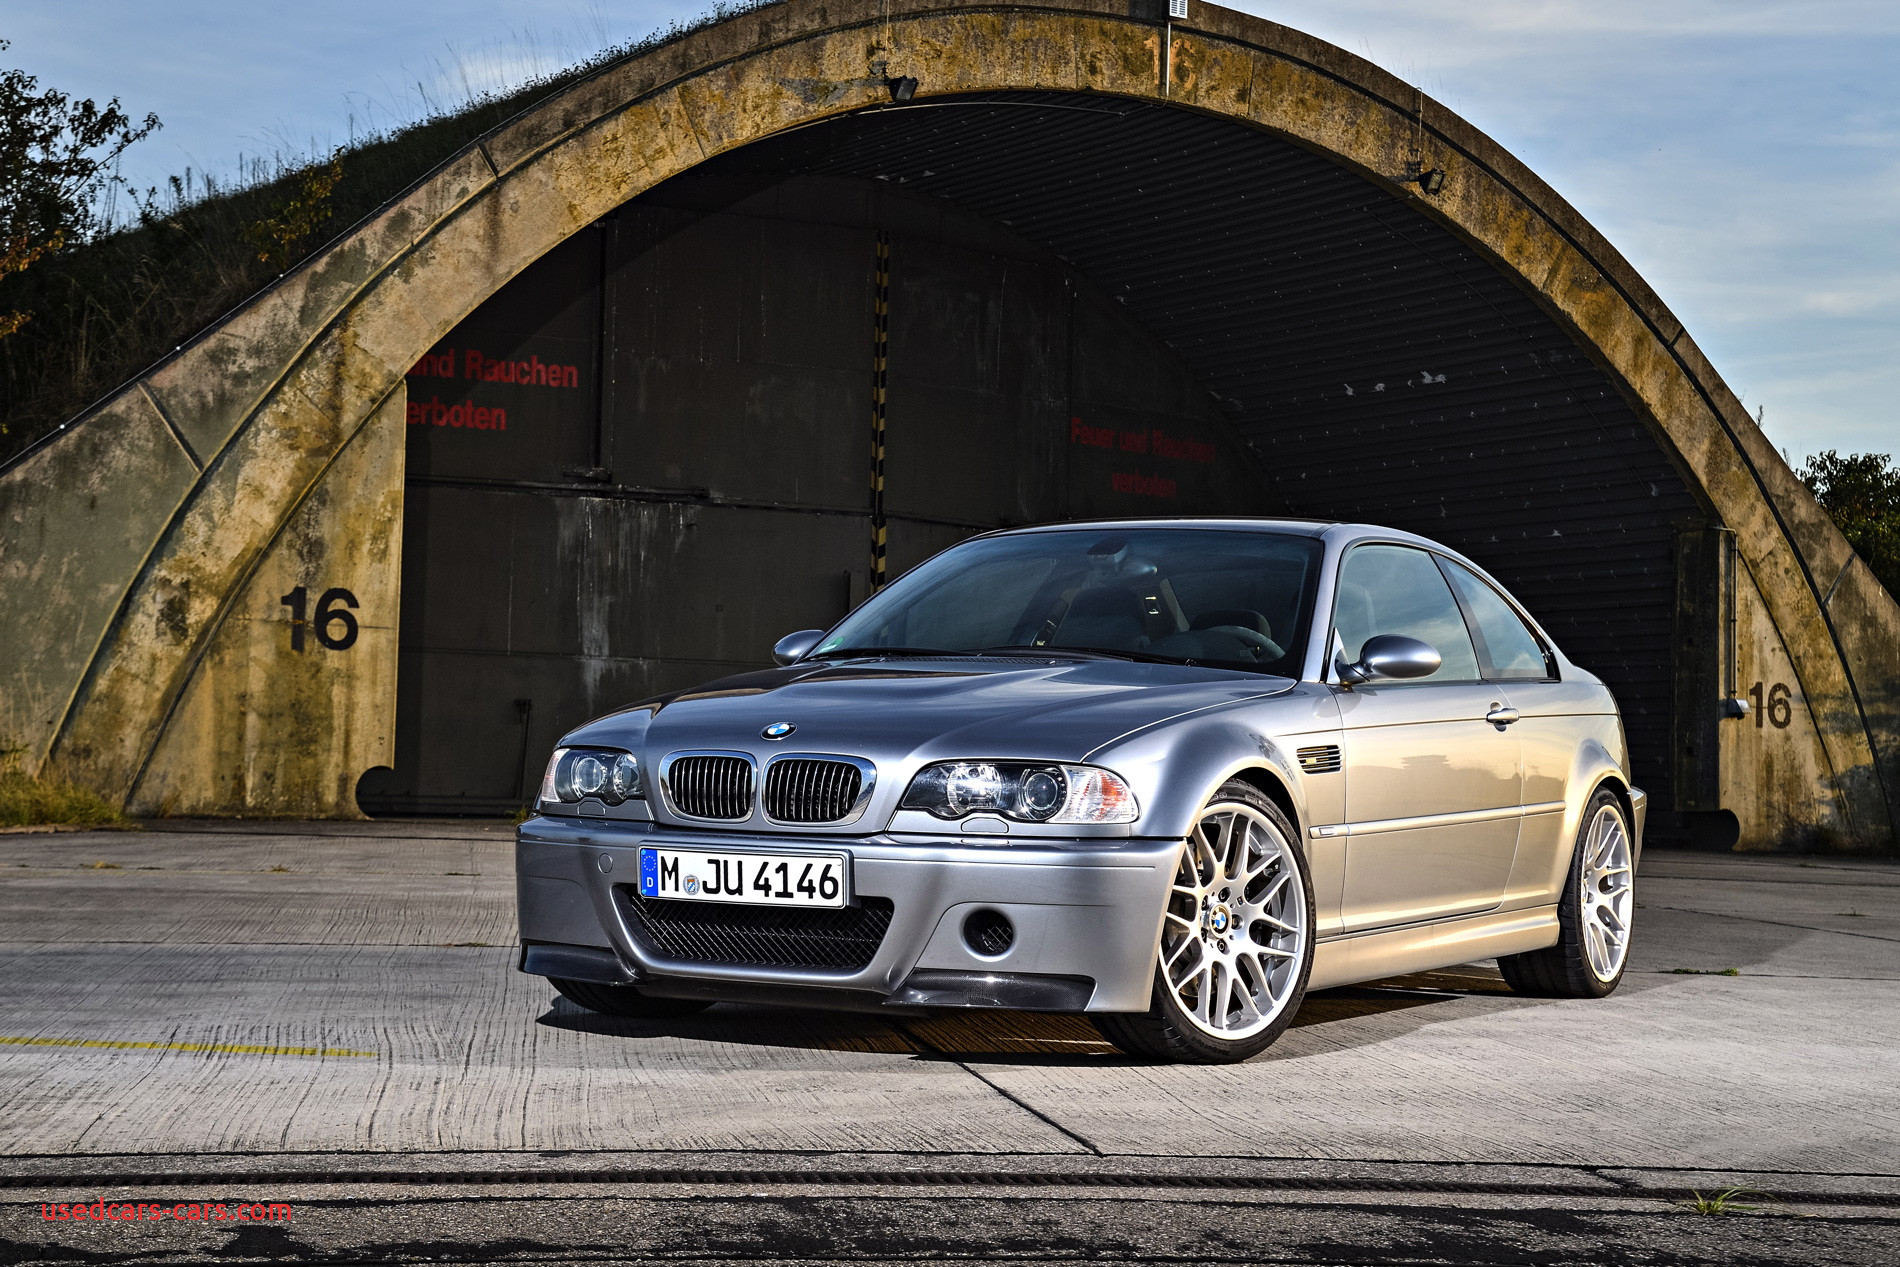 Bmw M3 Csl E46 Unique Video Joe Achilles Drives the Iconic Bmw E46 M3 Csl